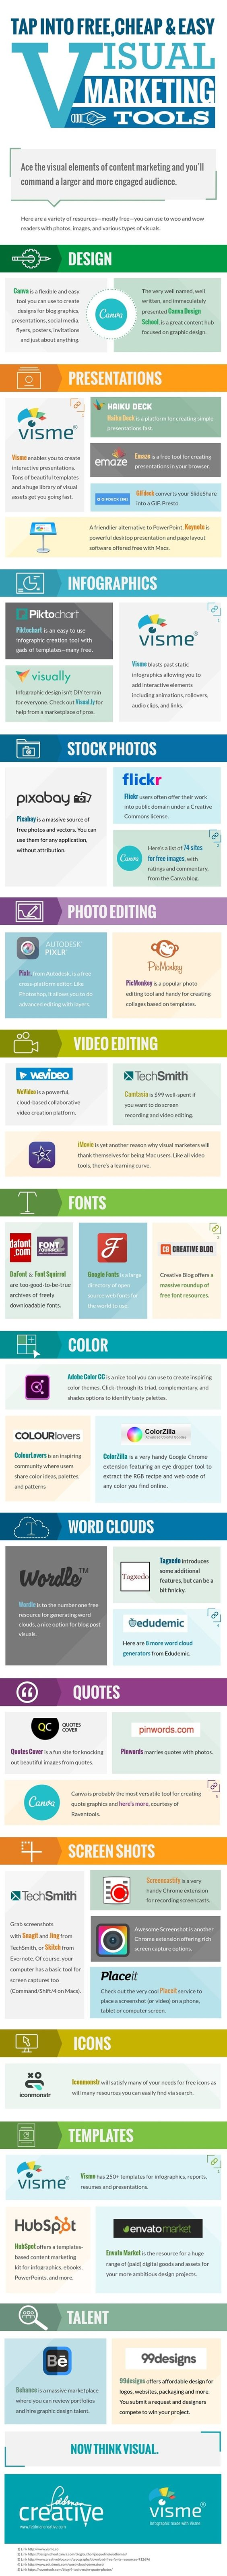 Tap Into Free, Cheap, and Easy Visual Marketing Tools [Infographic] - @marketingprofs